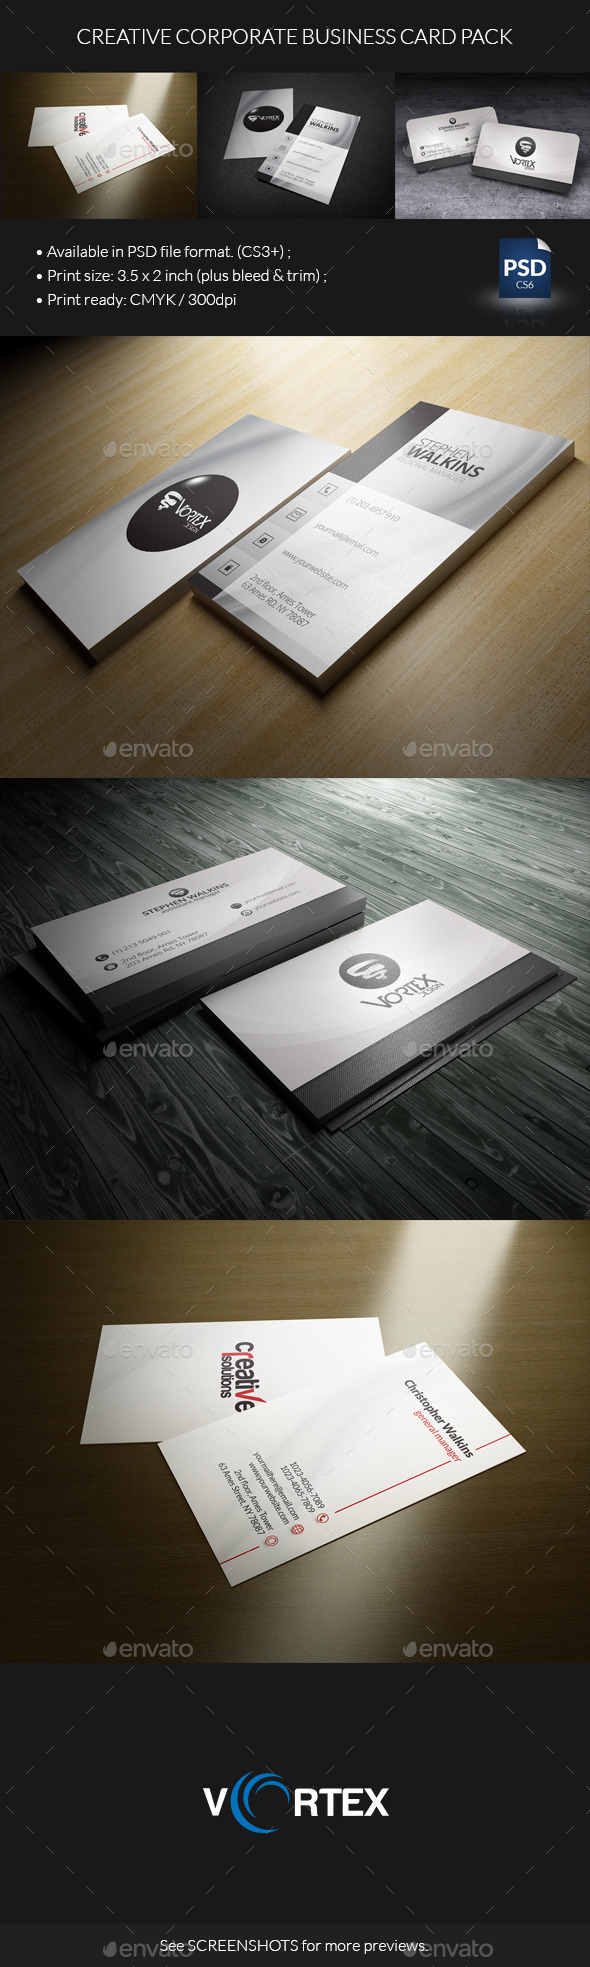 GraphicRiver Creative Corporate Business Card Pack 8793112